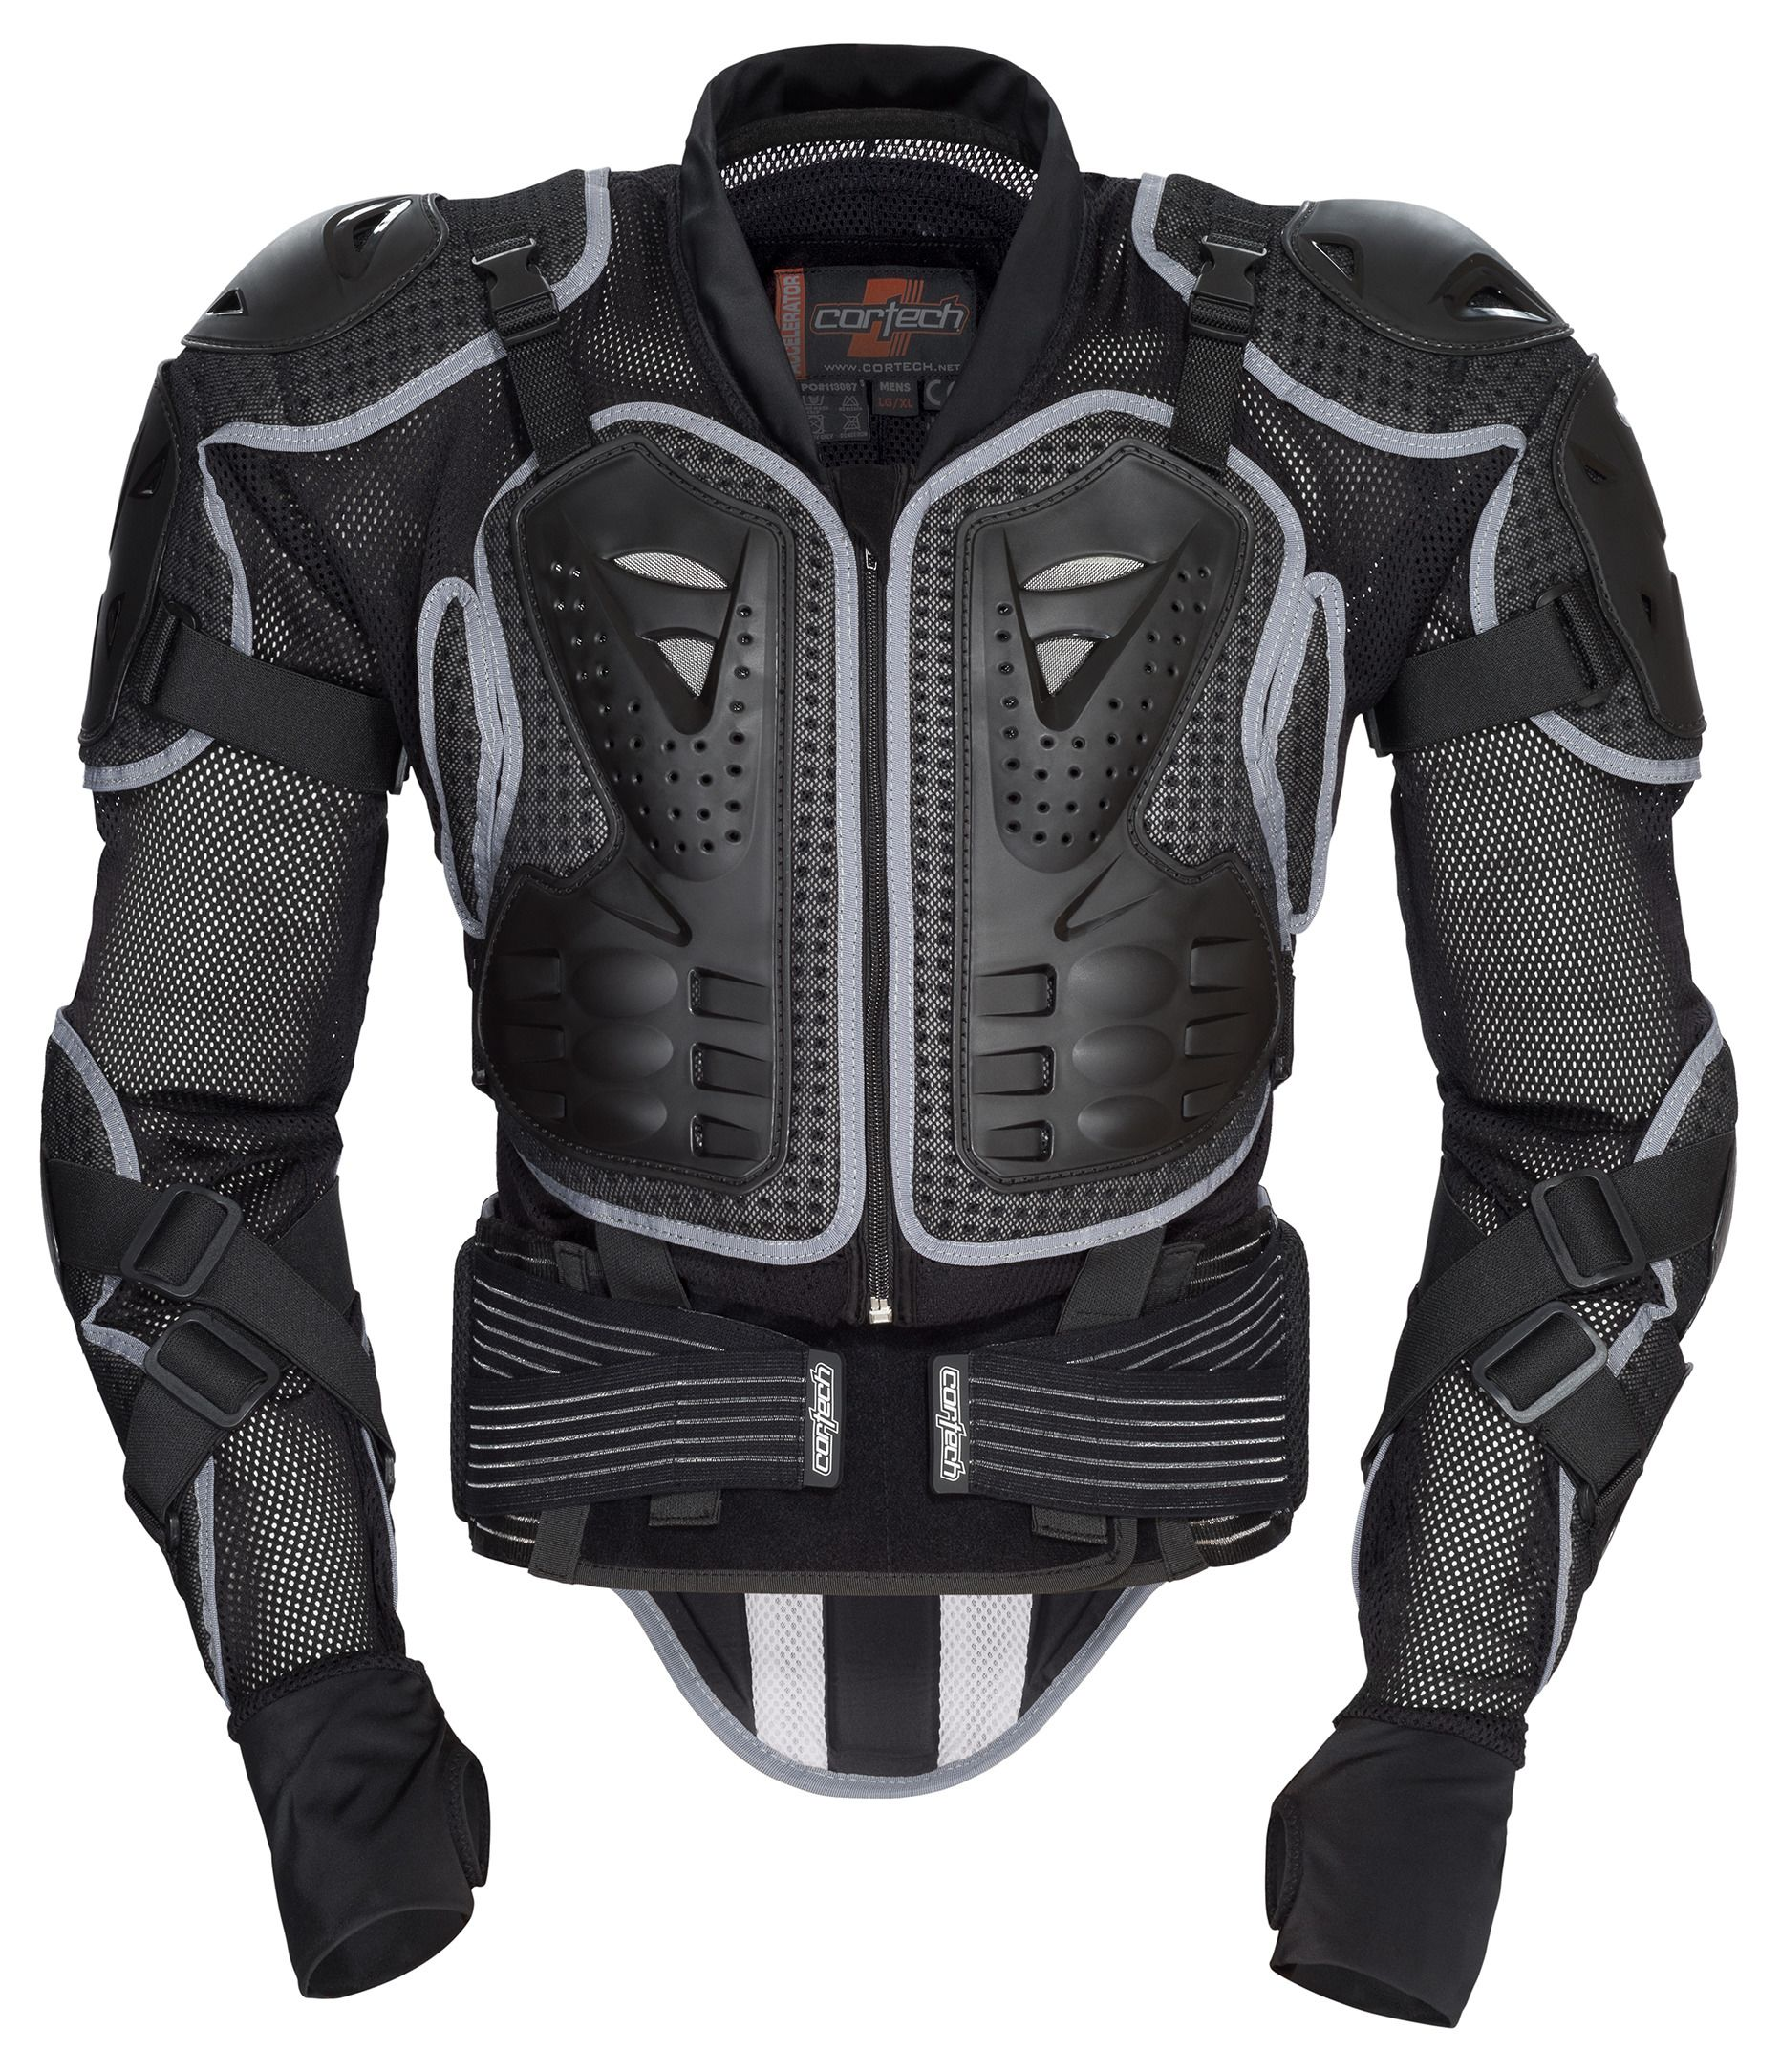 Cortech Accelerator Protector Armored Jacket Sm Md 20